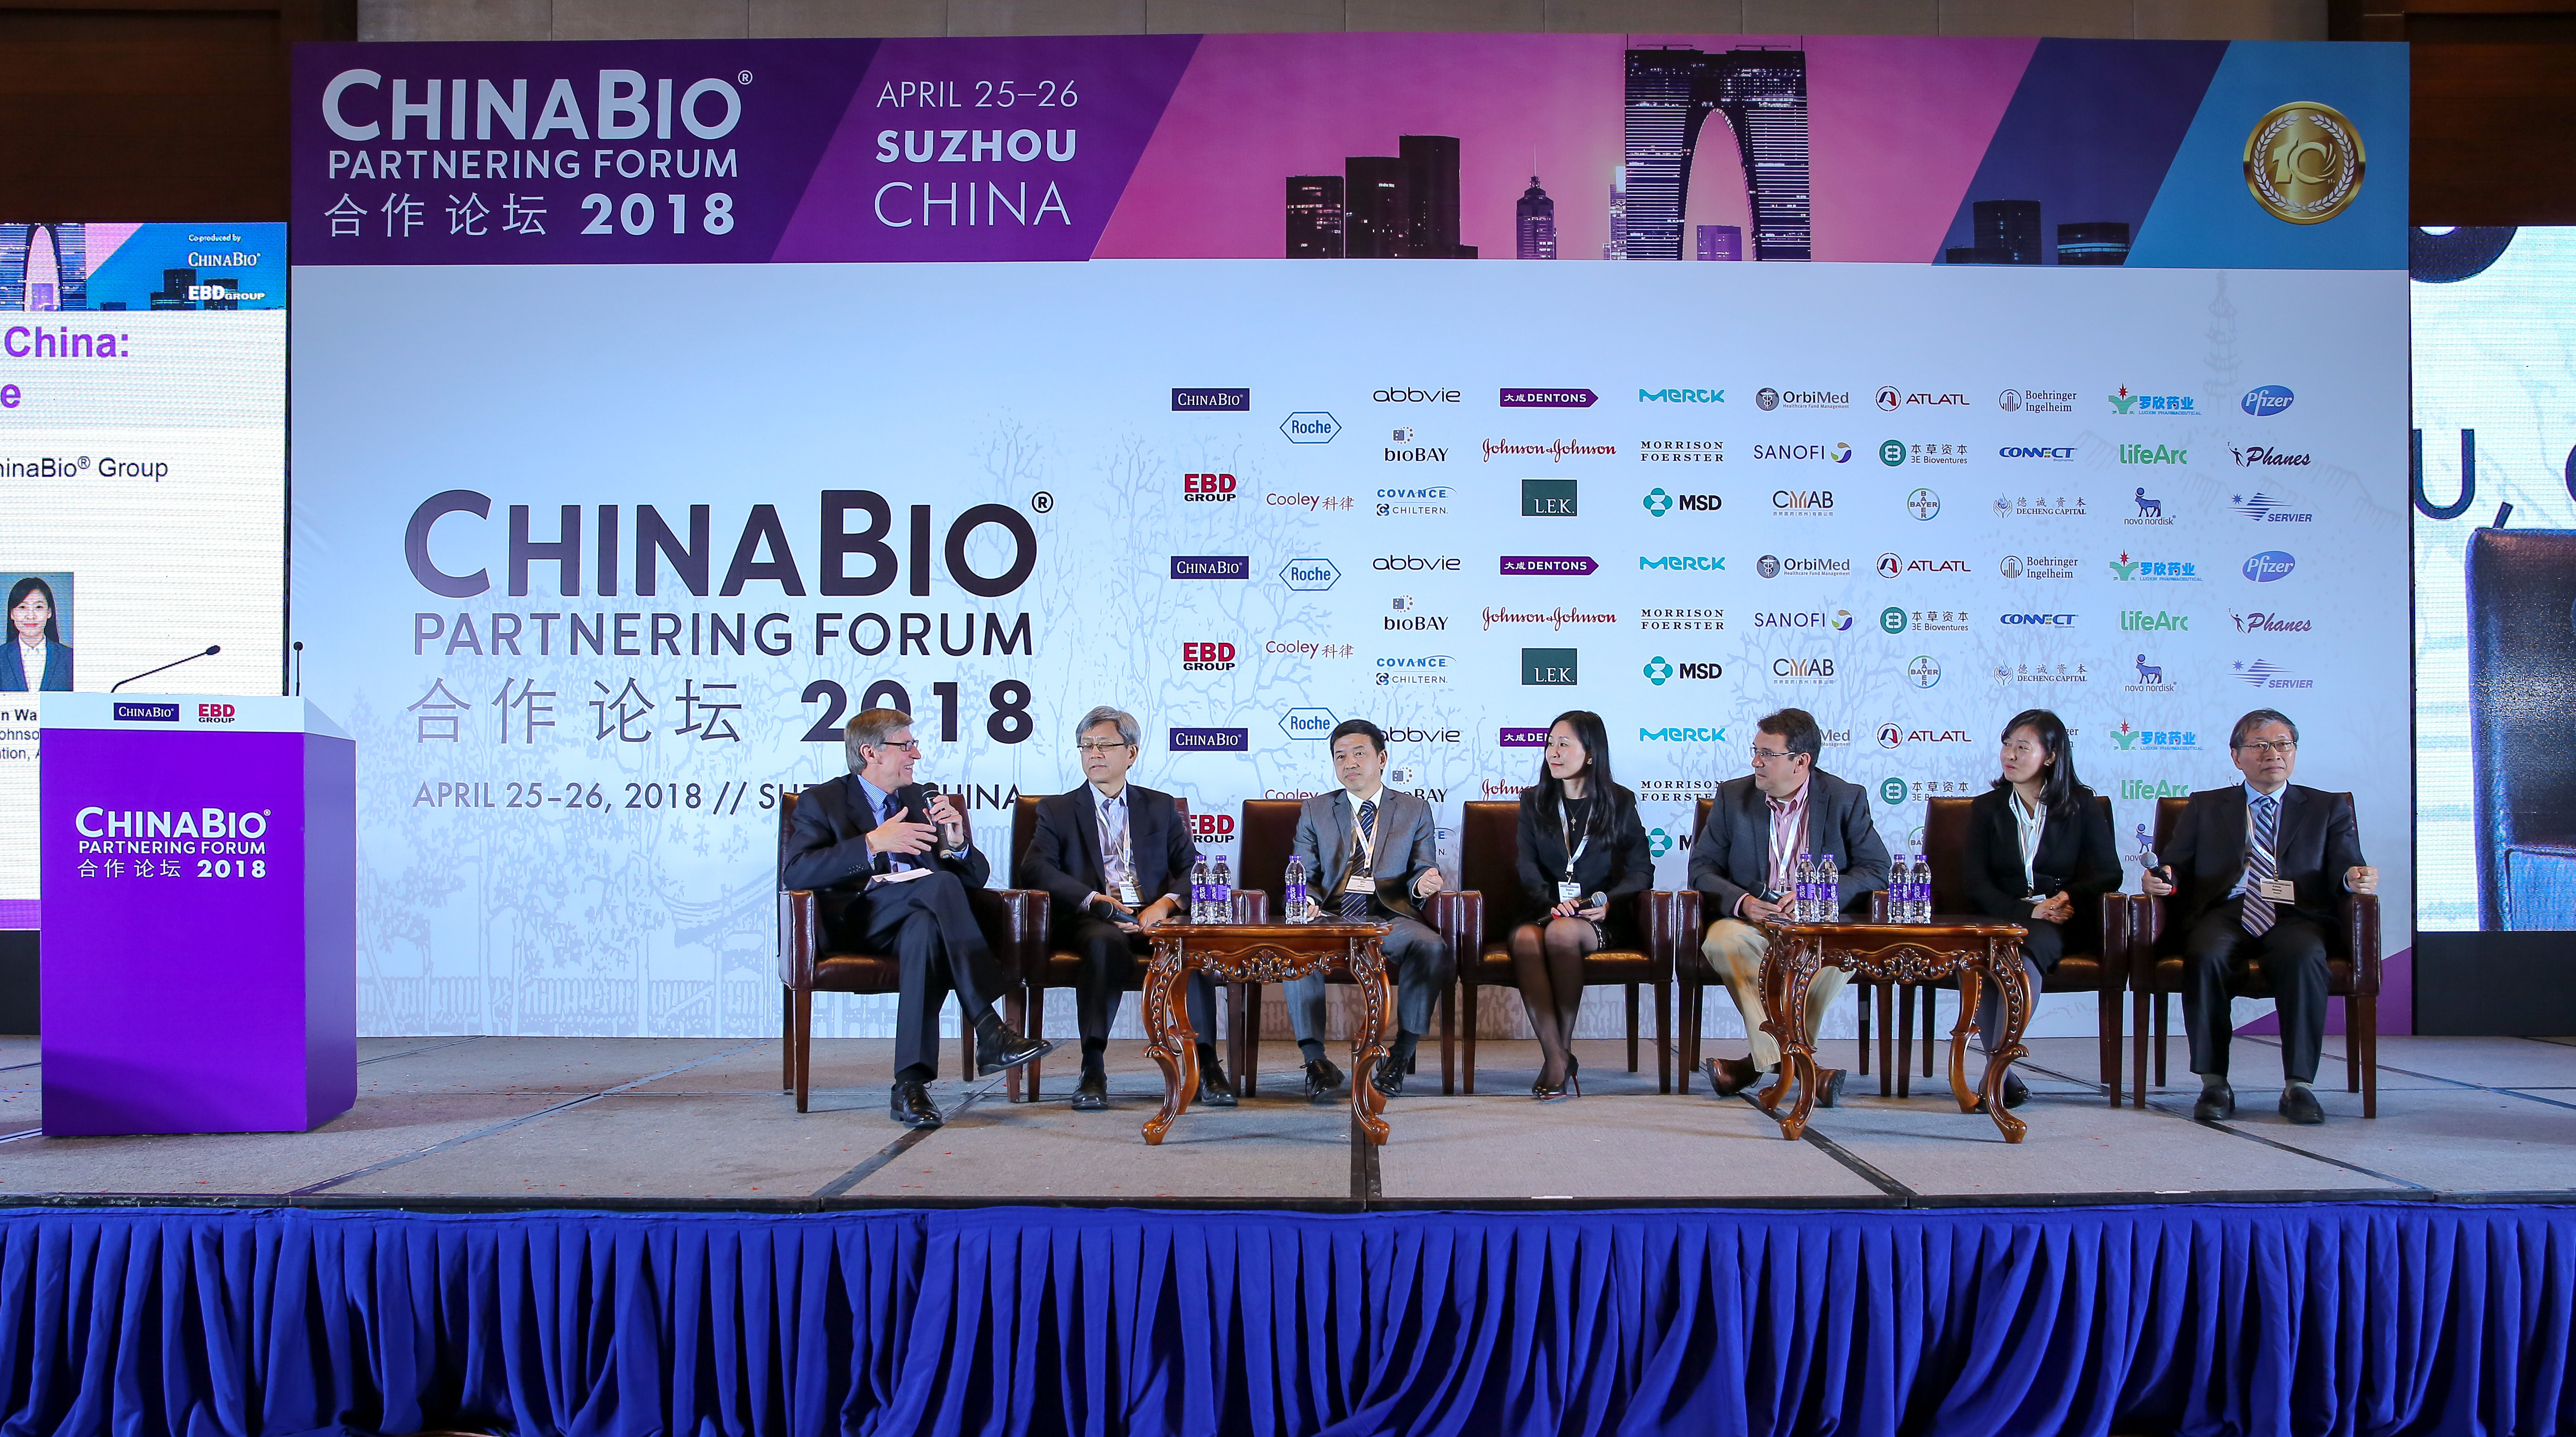 Chinabio partnering forum 2018